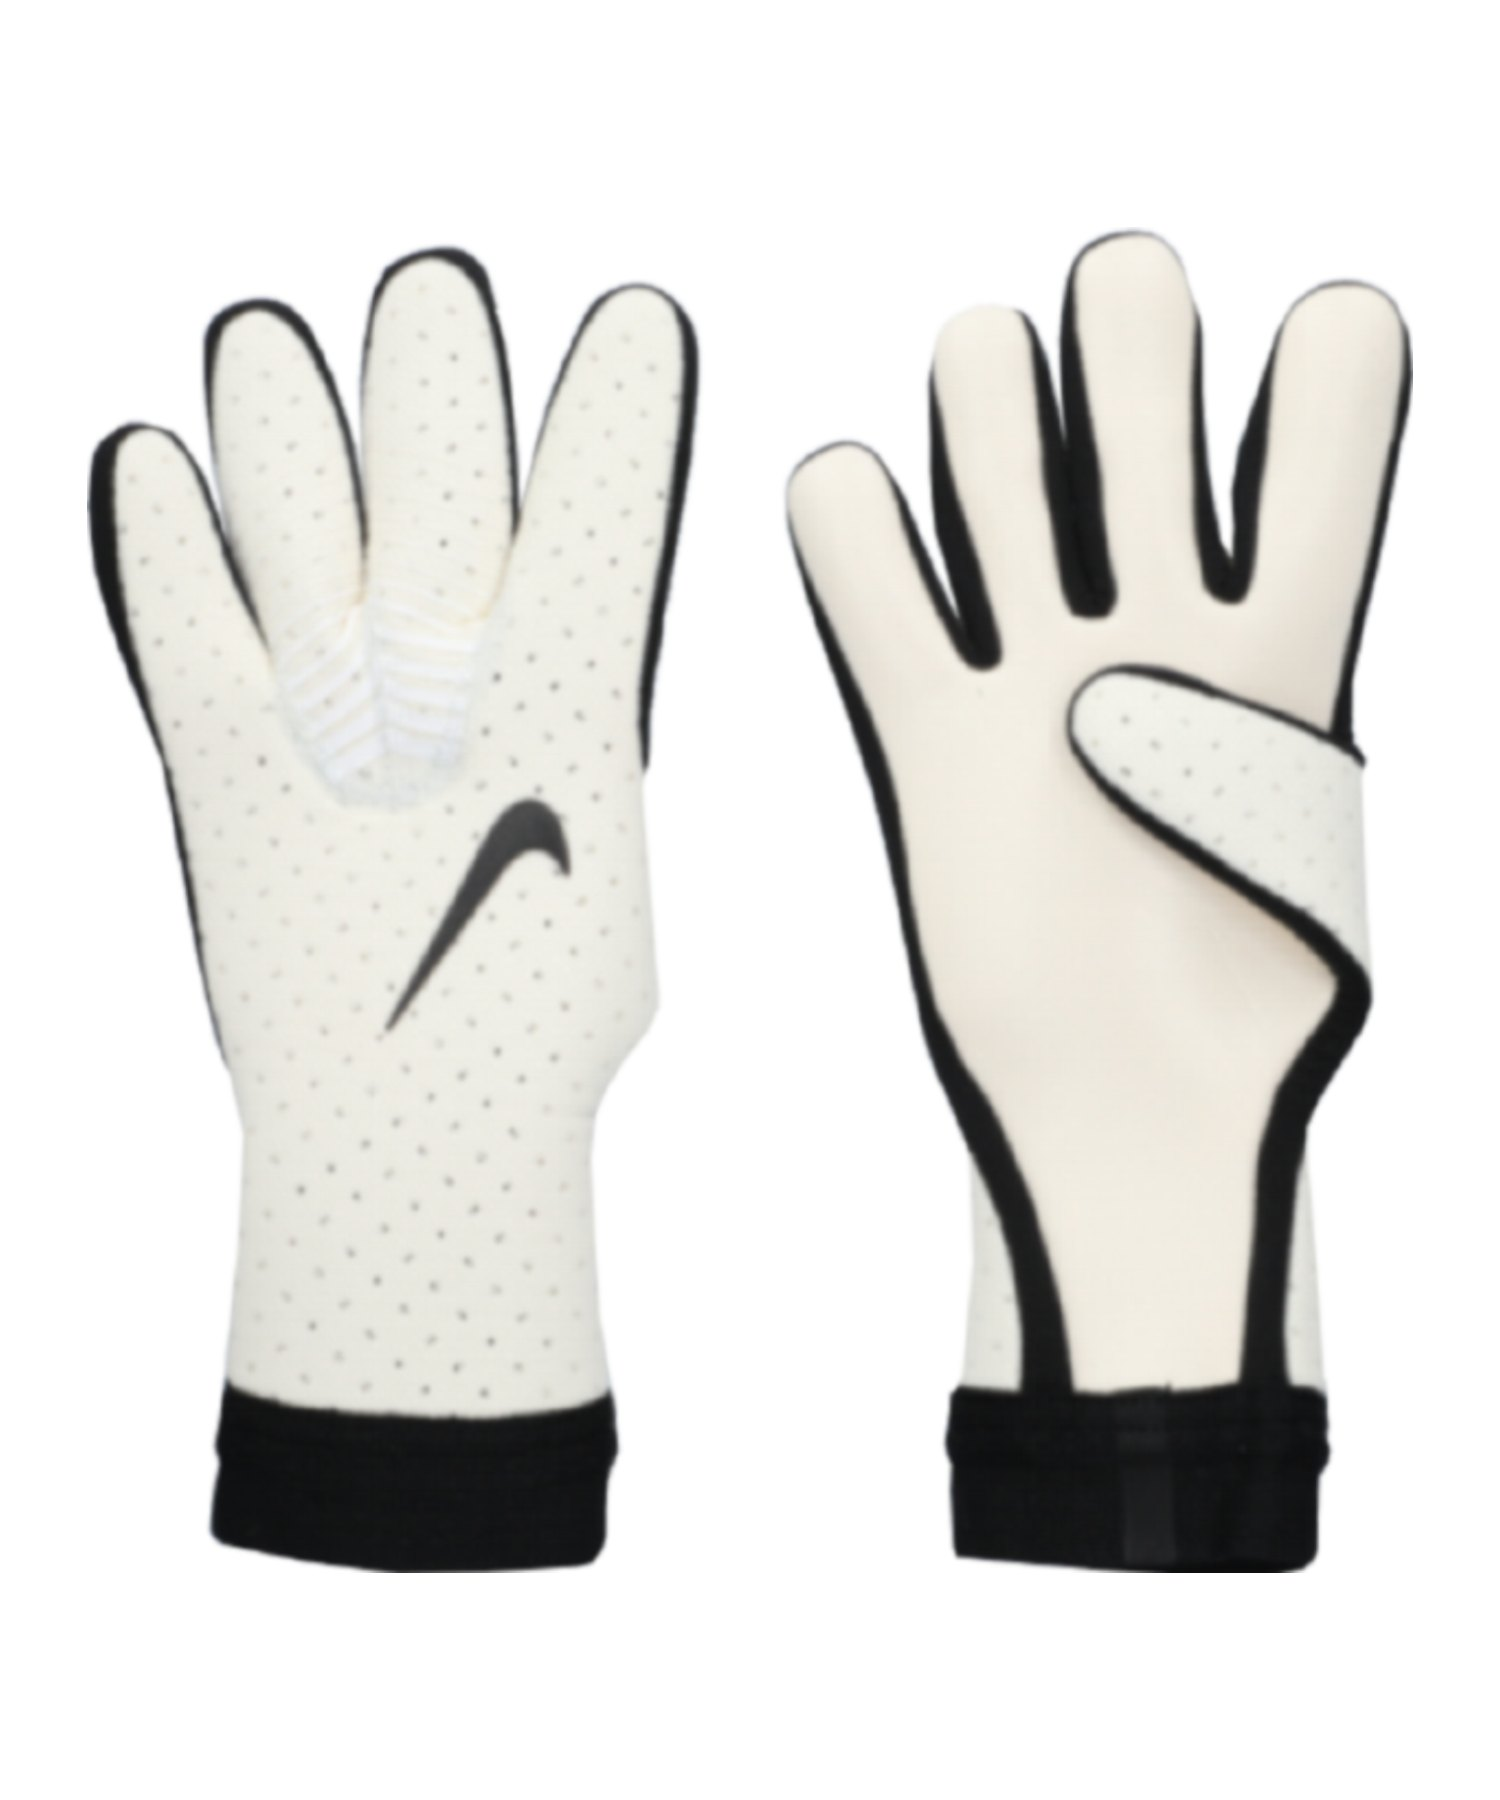 Nike Mercurial Touch Elite Promo 20cm TW-Handschuh Weiss F100 - weiss